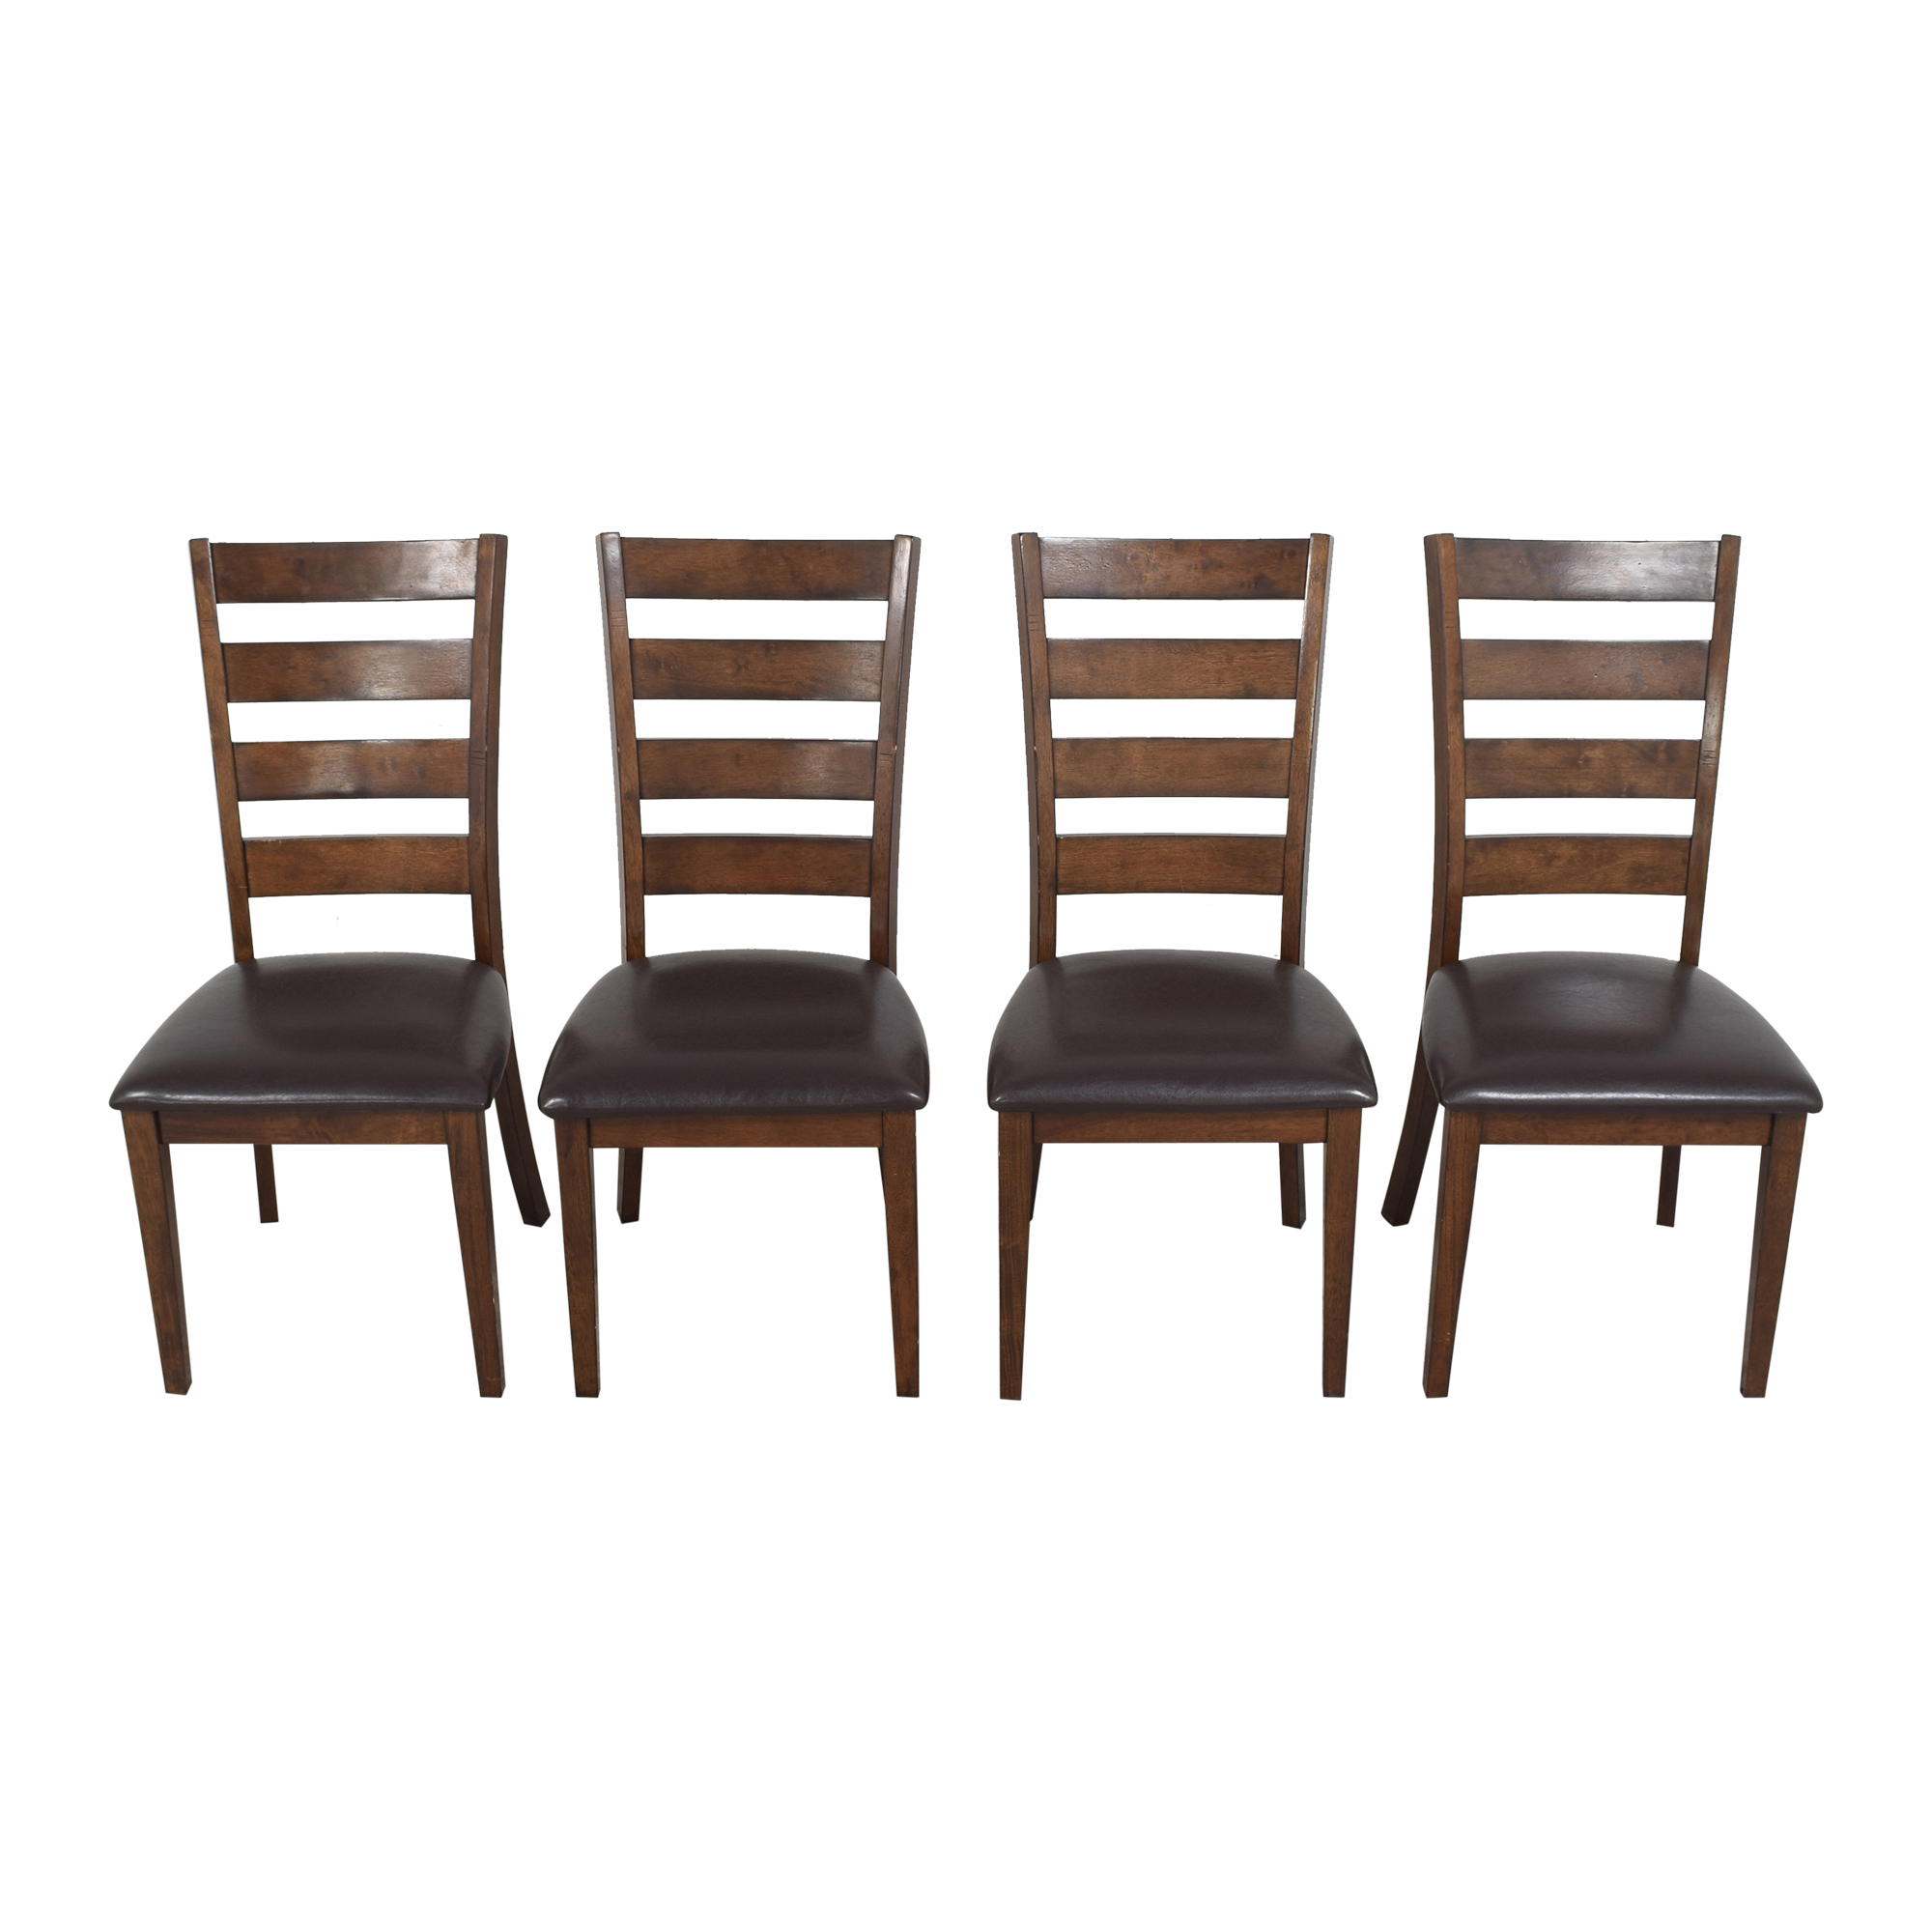 shop Raymour & Flanigan Ladder Back Dining Chairs Raymour & Flanigan